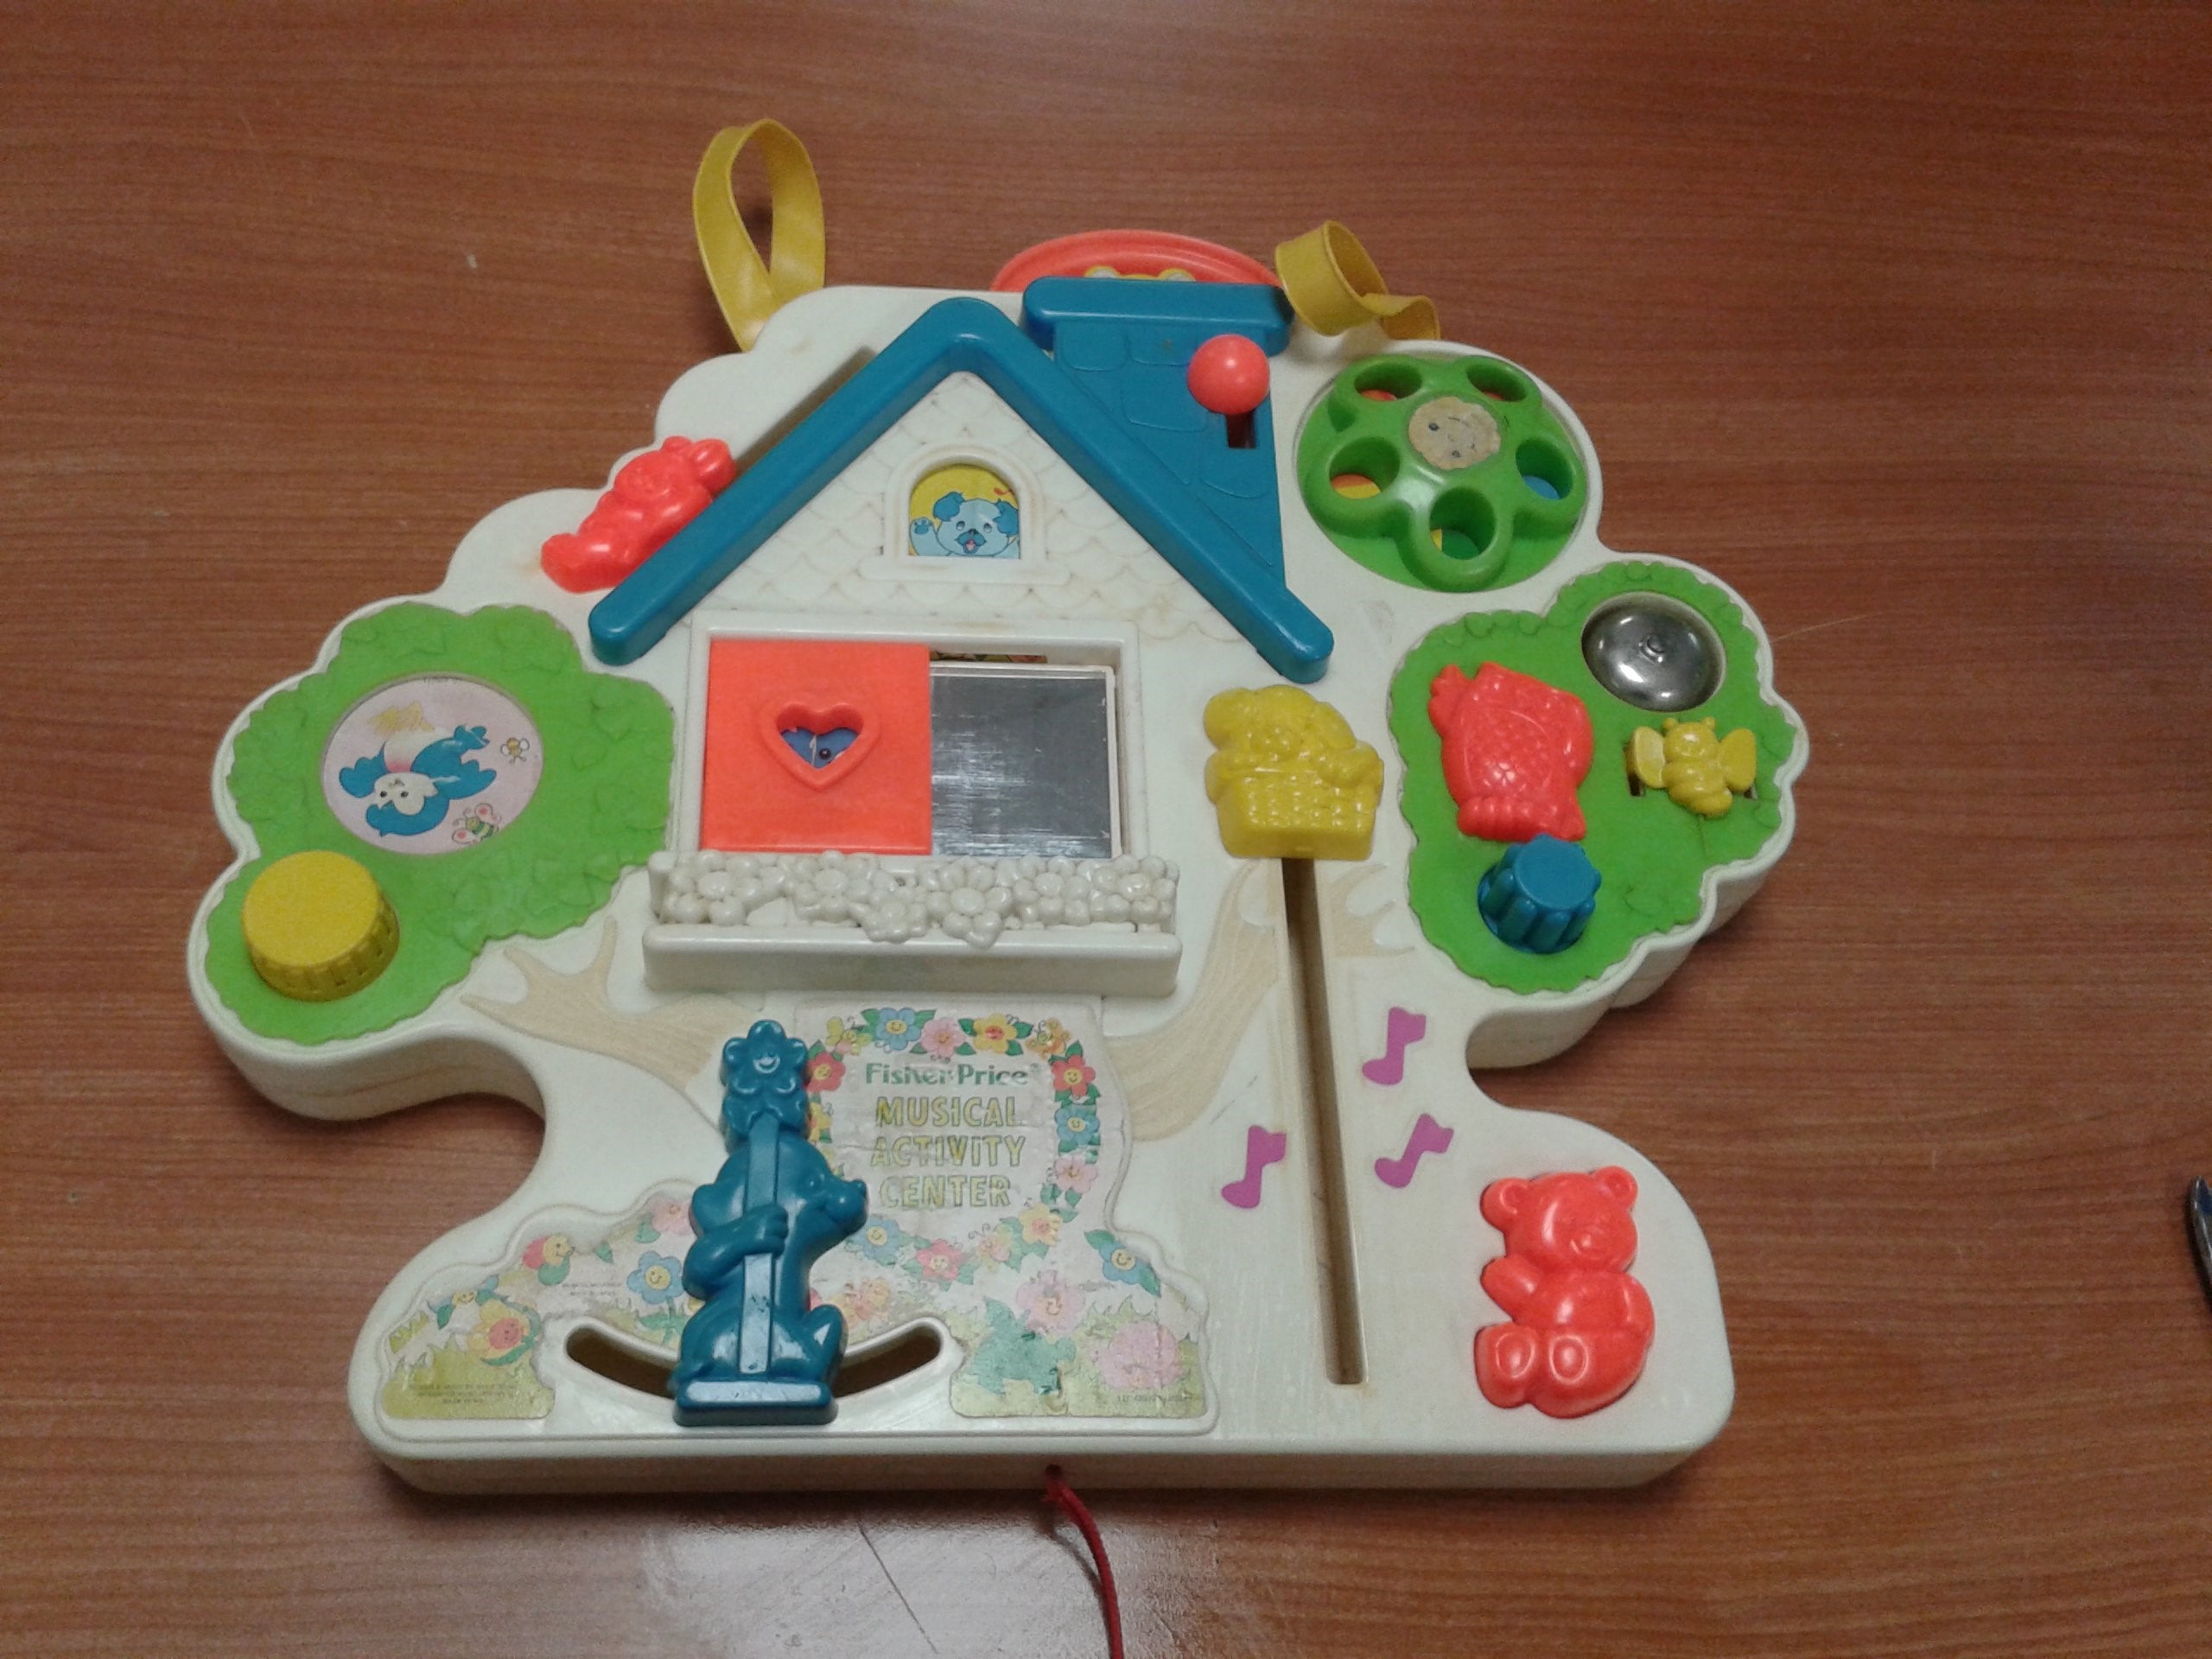 GIOCO VINTAGE FISHER-PRICE MUSICAL ACTIVITY CENTER